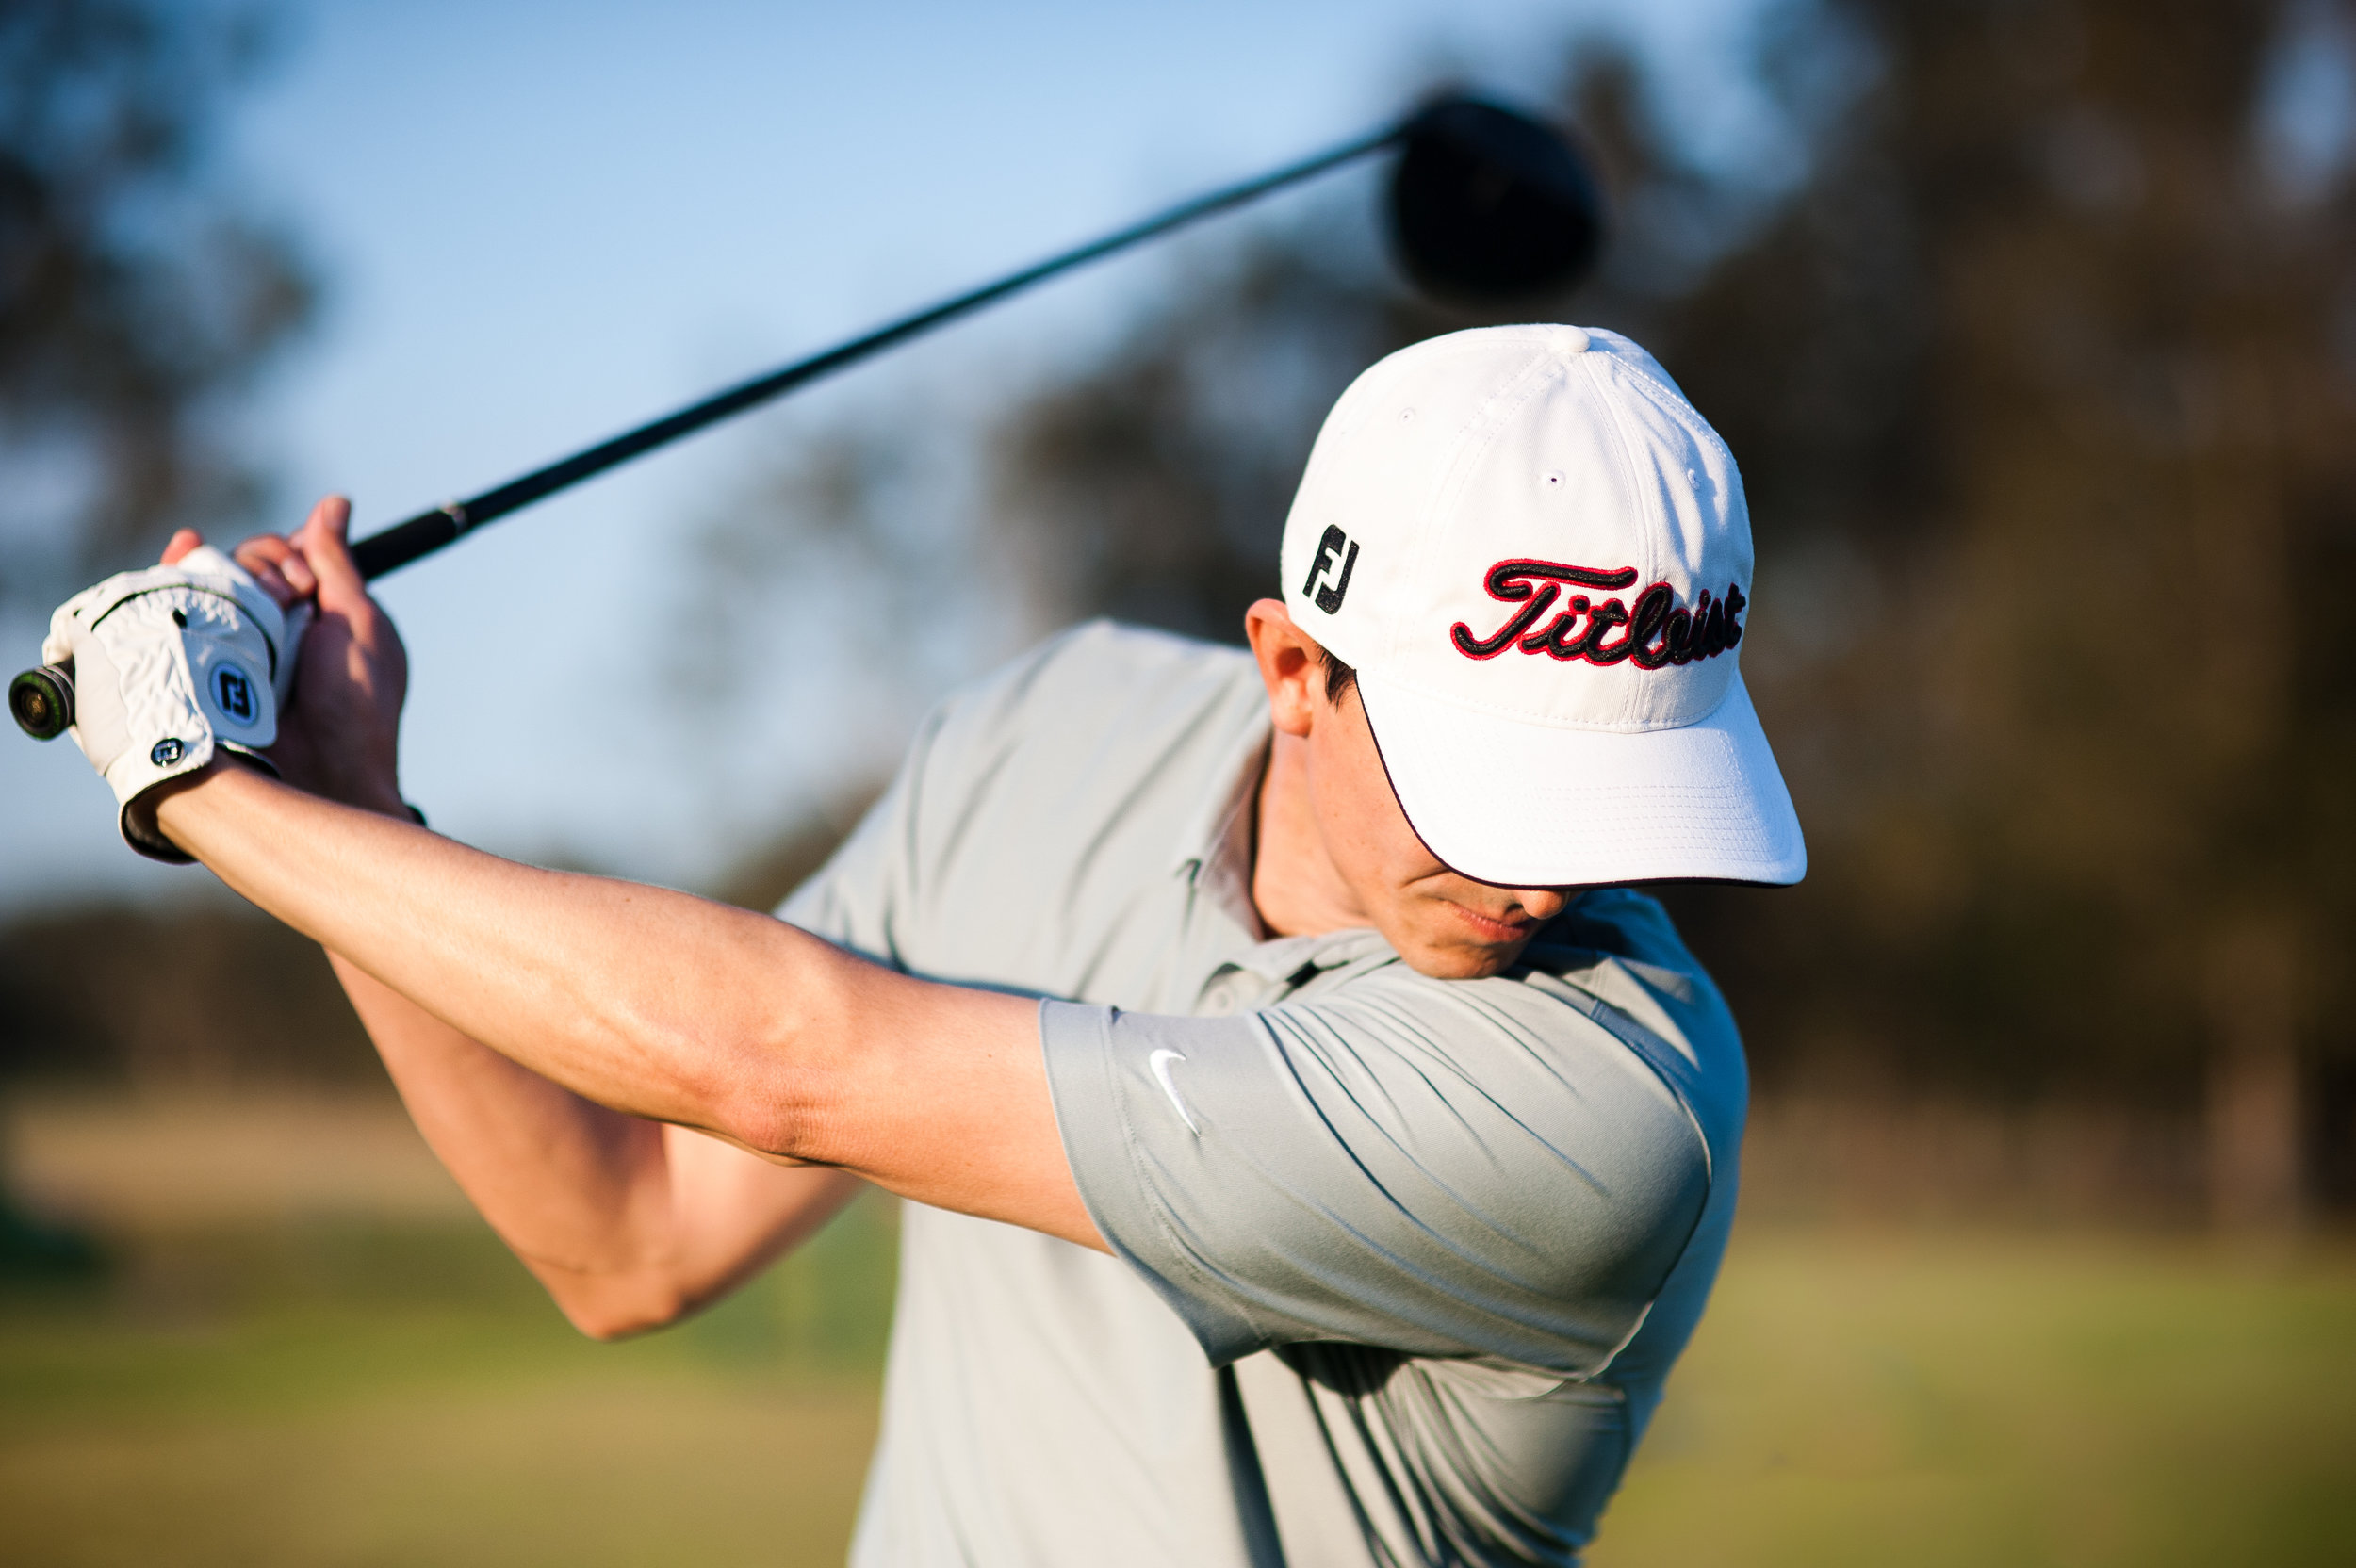 Troy can take your golf game to the next level with simple golf swing fixes to lower your scores